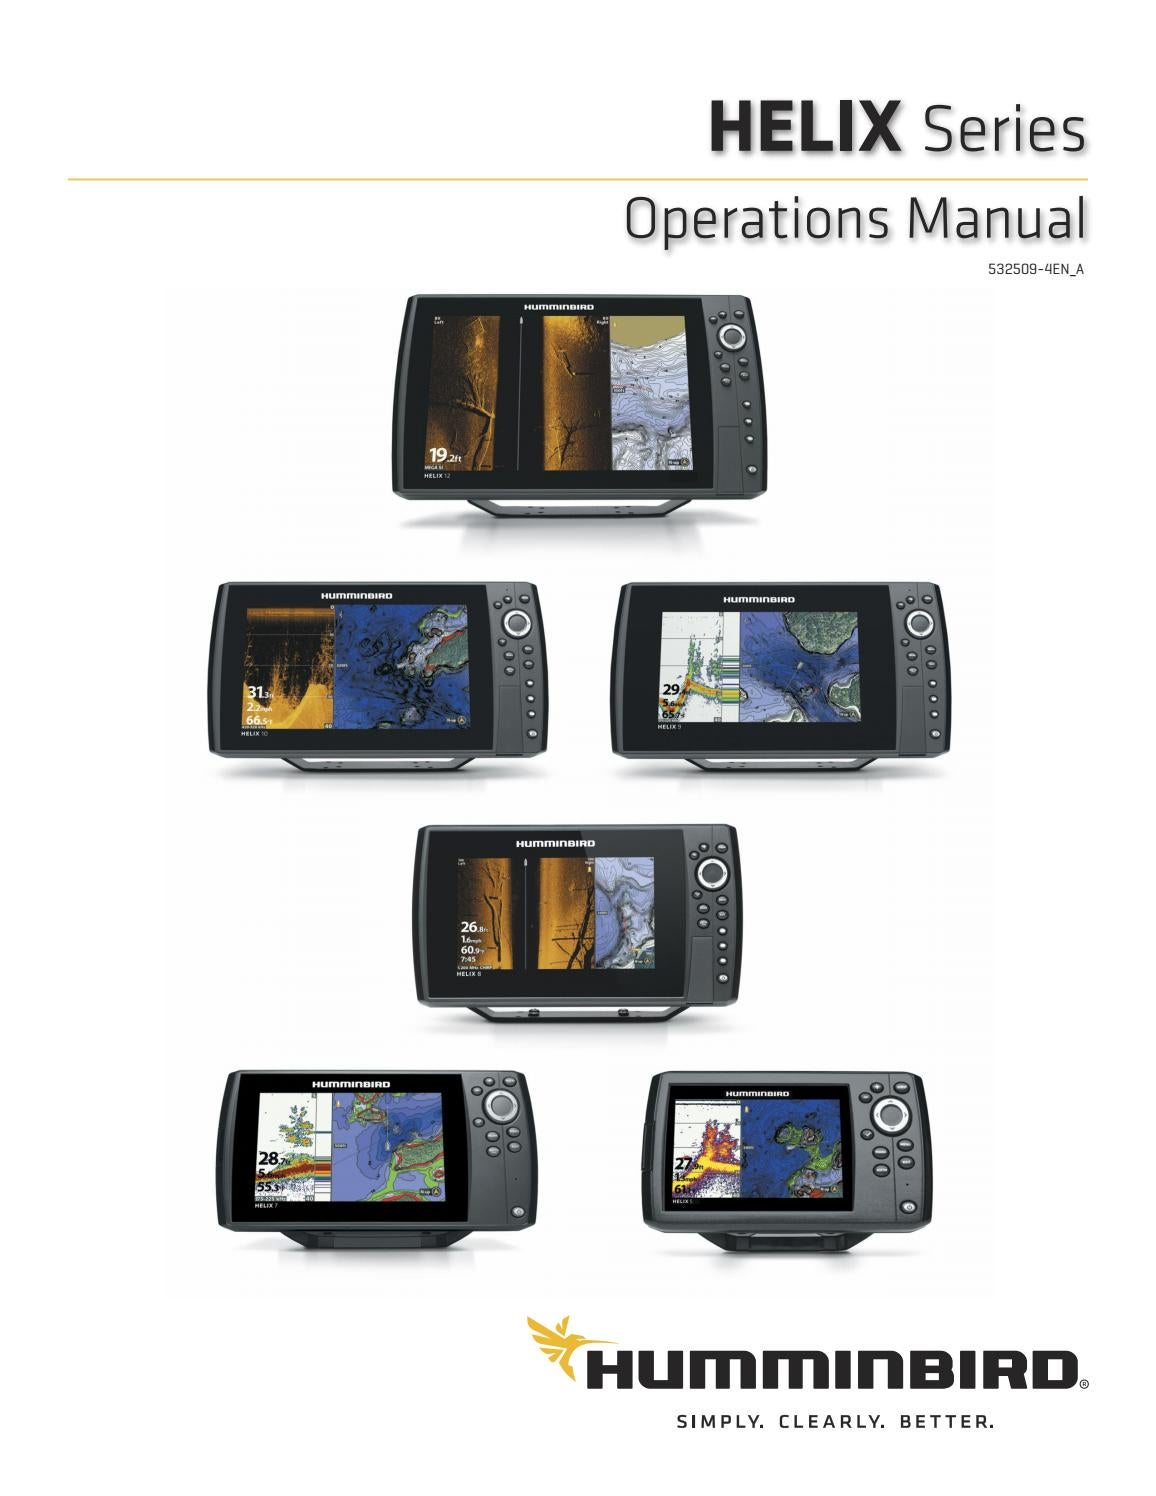 Humminbird Helix product manual 2109 (ENG) by Normark Suomi